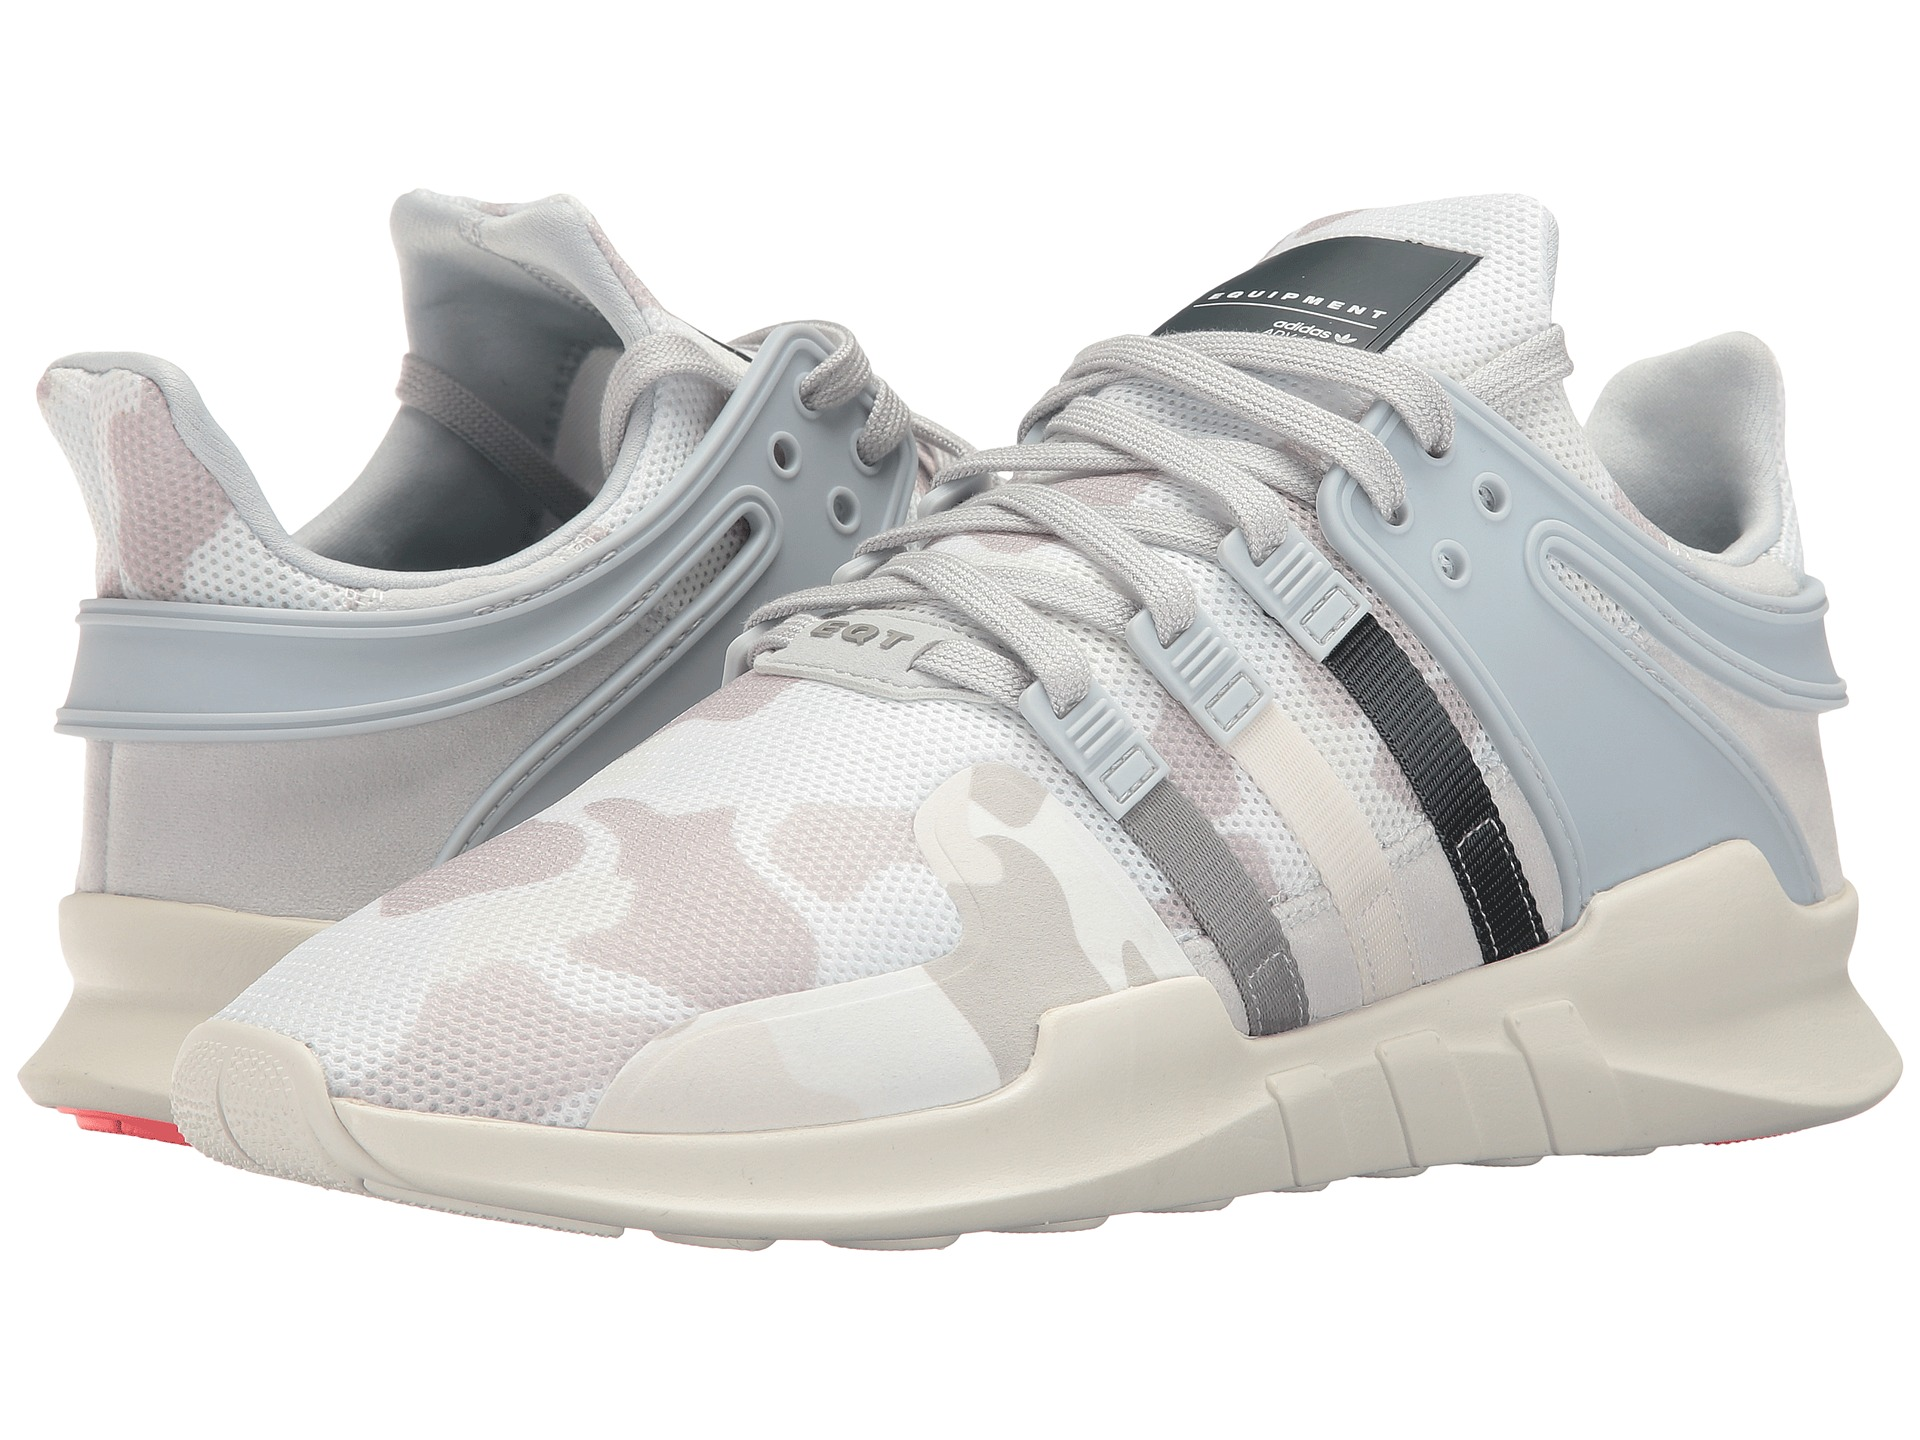 "adidas EQT Support Adv ""Olive Cargo Camo Men Trainer"